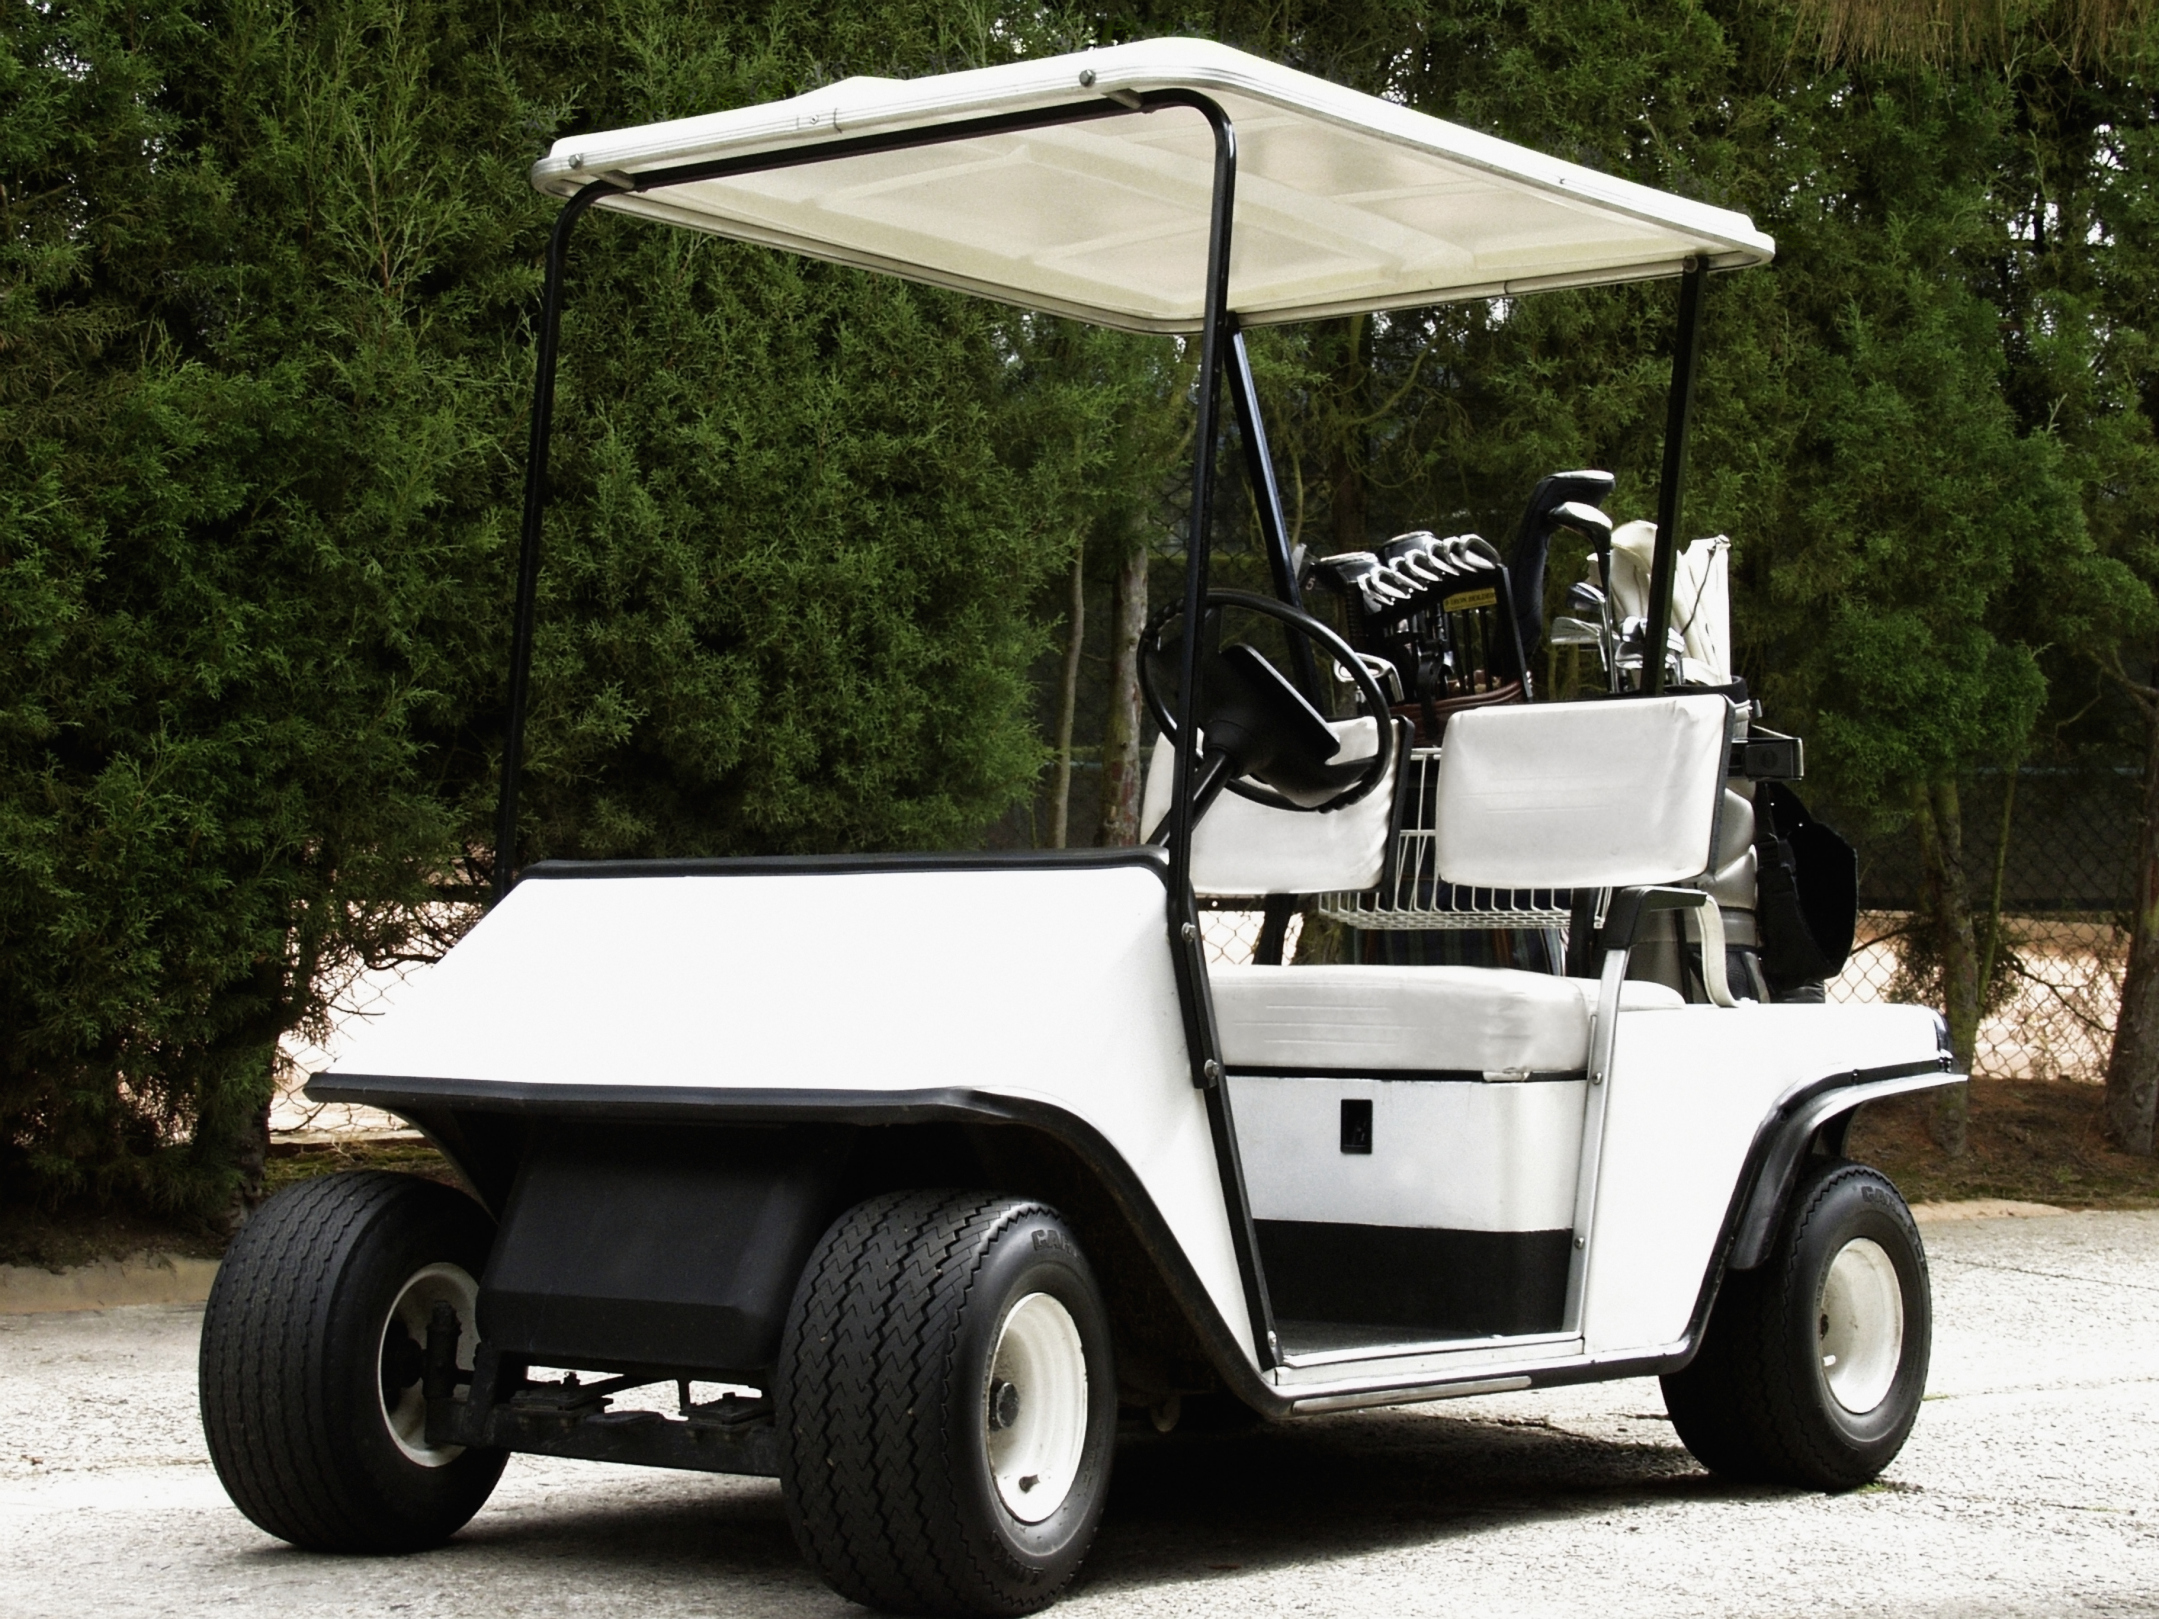 Speed Adjustments for the EZ Go Golf Cart